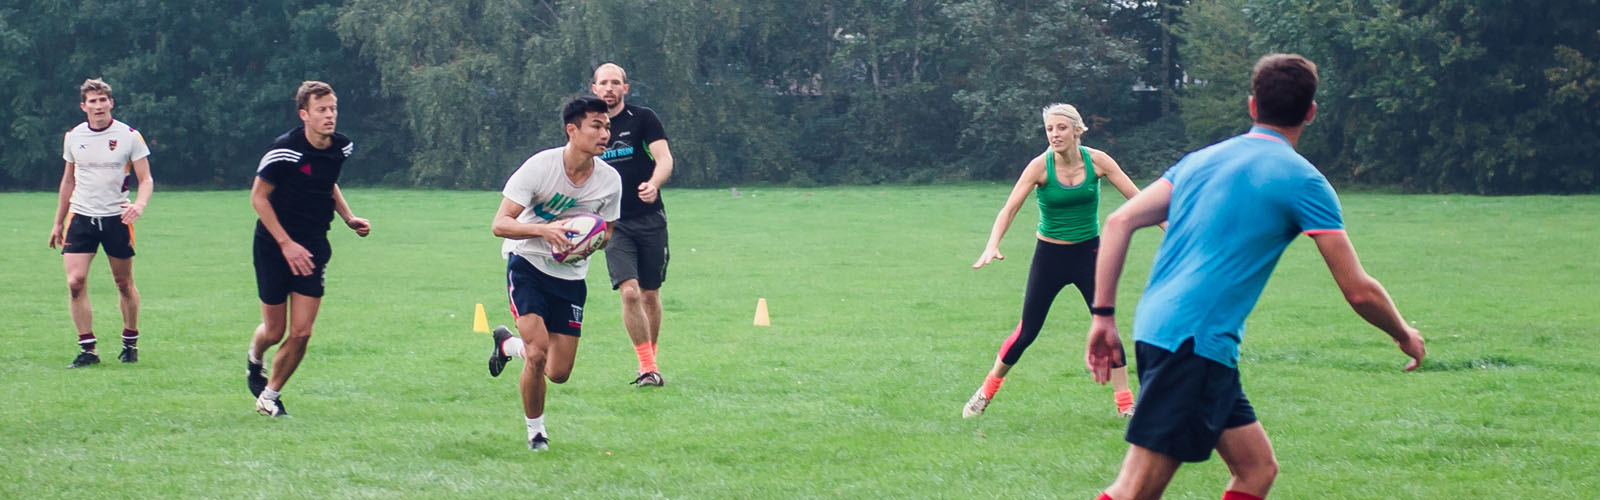 touch rugby london